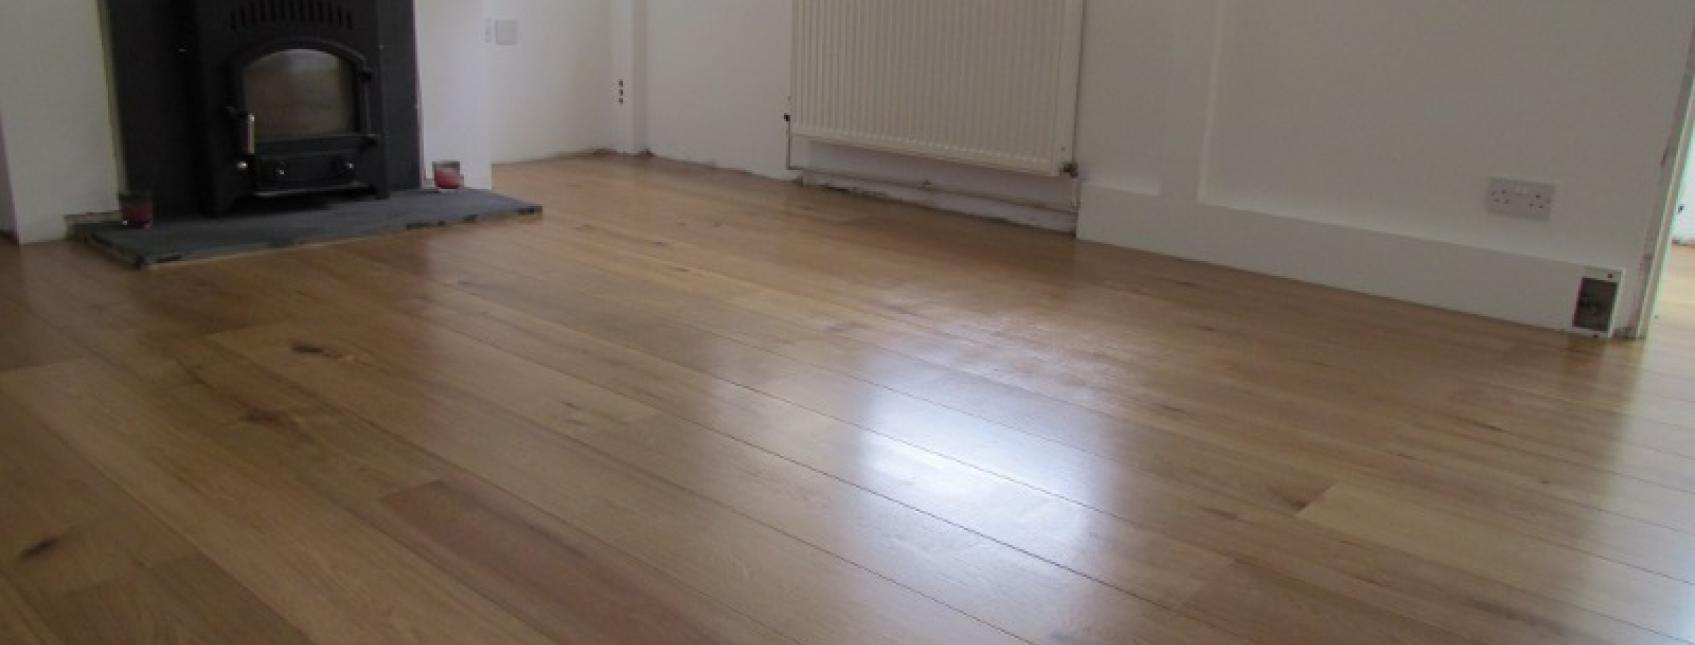 Clear sating treatex on clients wood floor